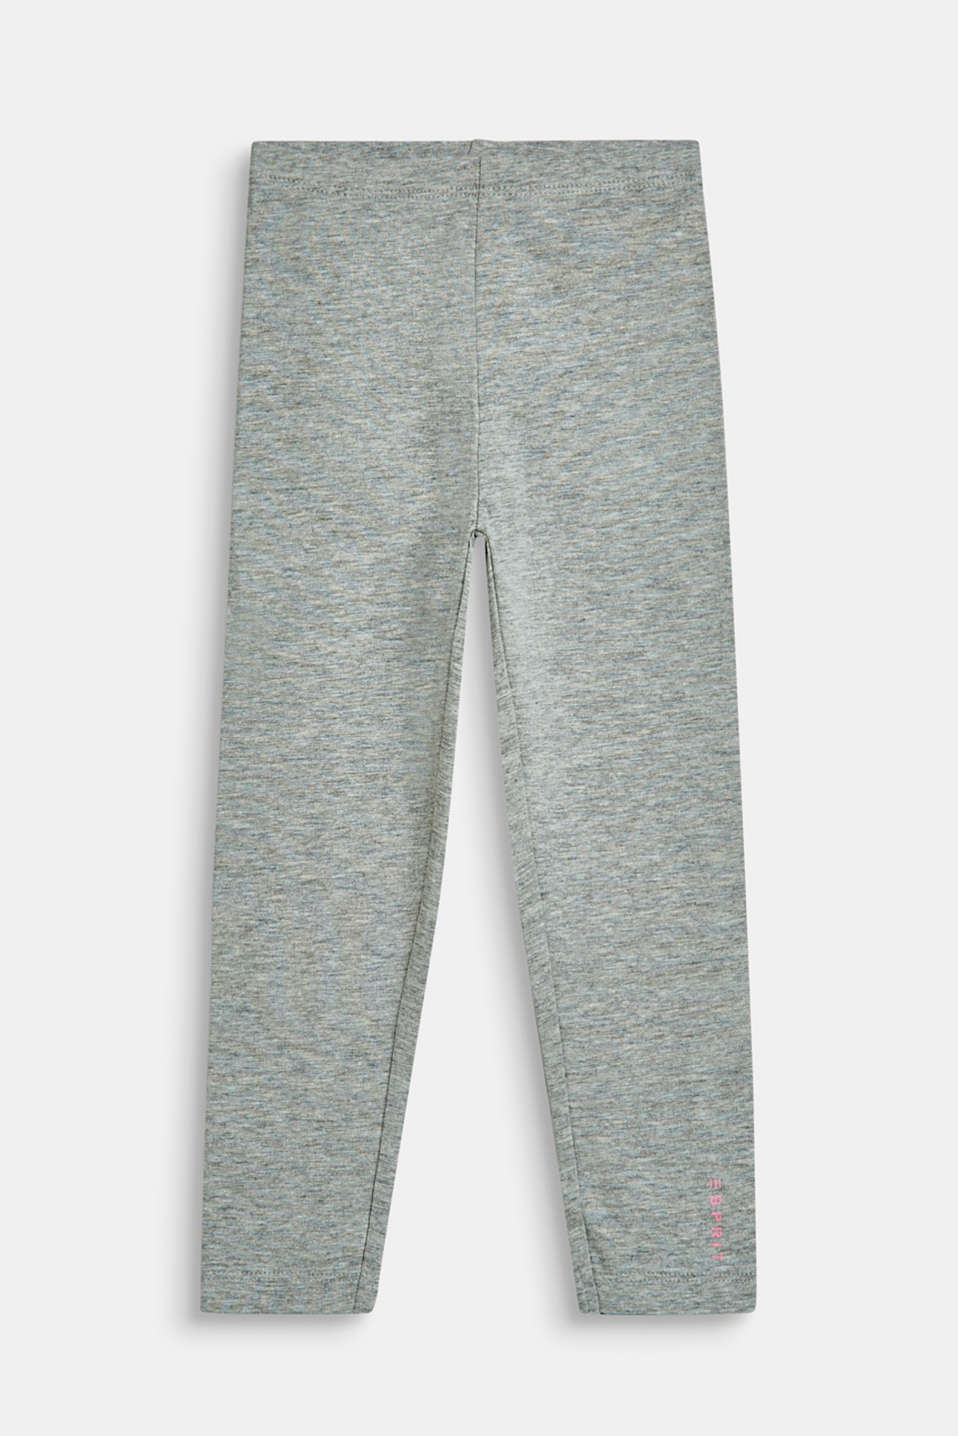 Esprit - Opaque leggings made of melange jersey